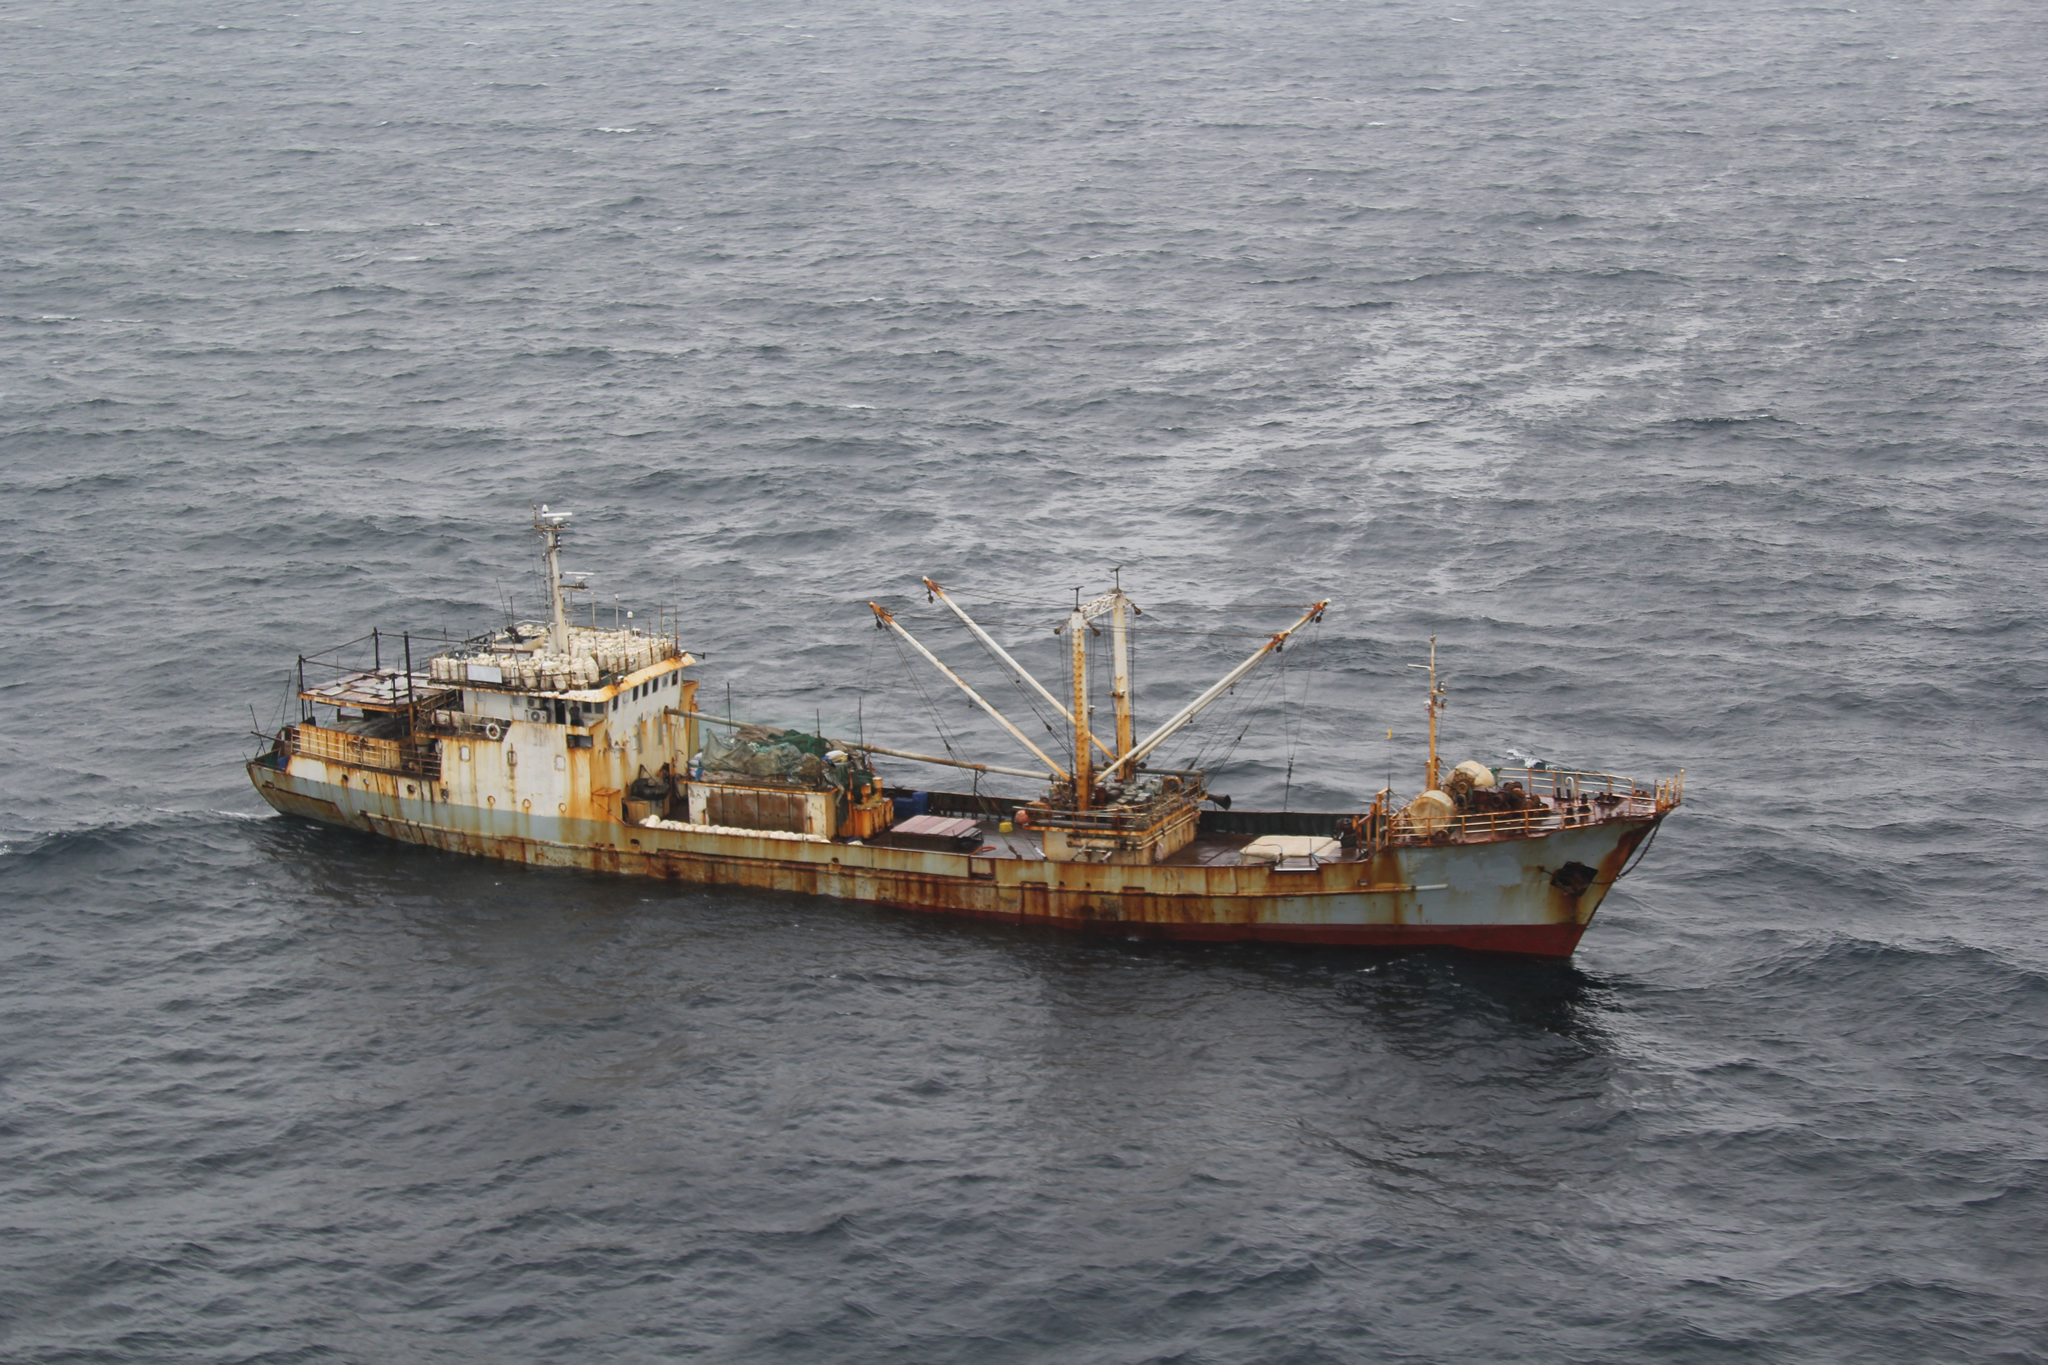 Operation driftnet north pacific ocean canadian armed for Fishing without a license california